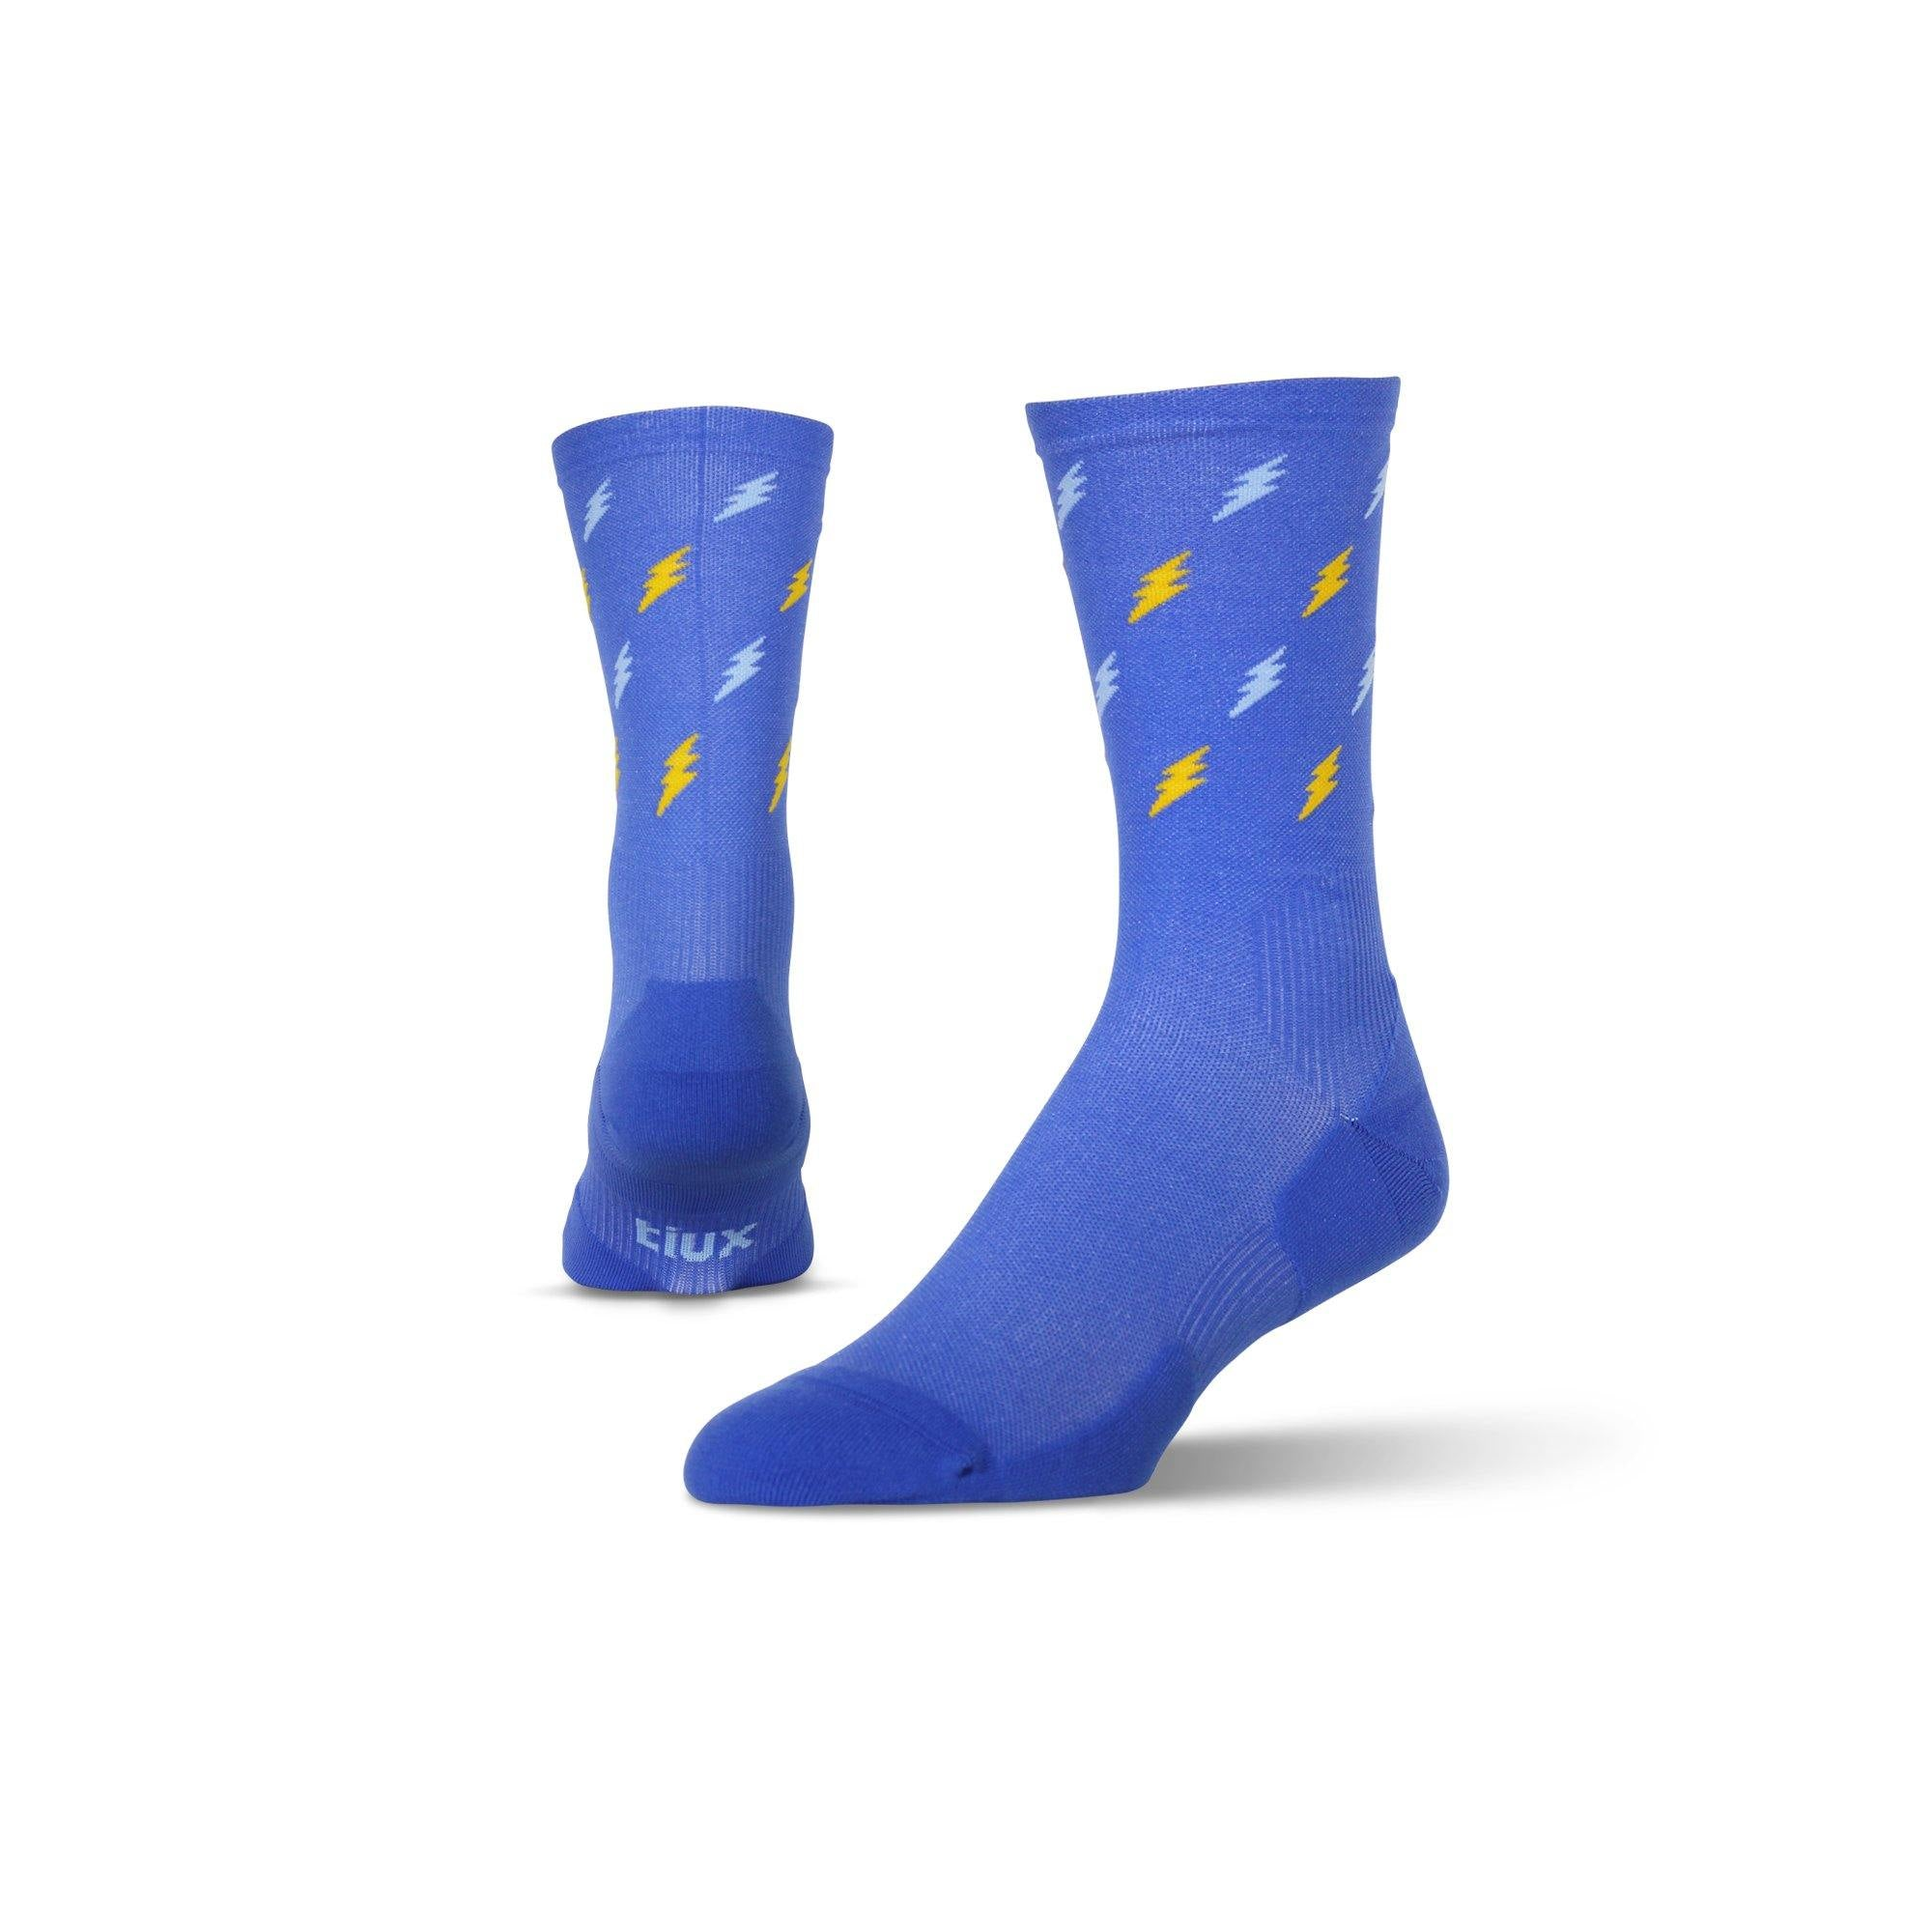 Voltage Run Crew - Graduated Compression Socks.